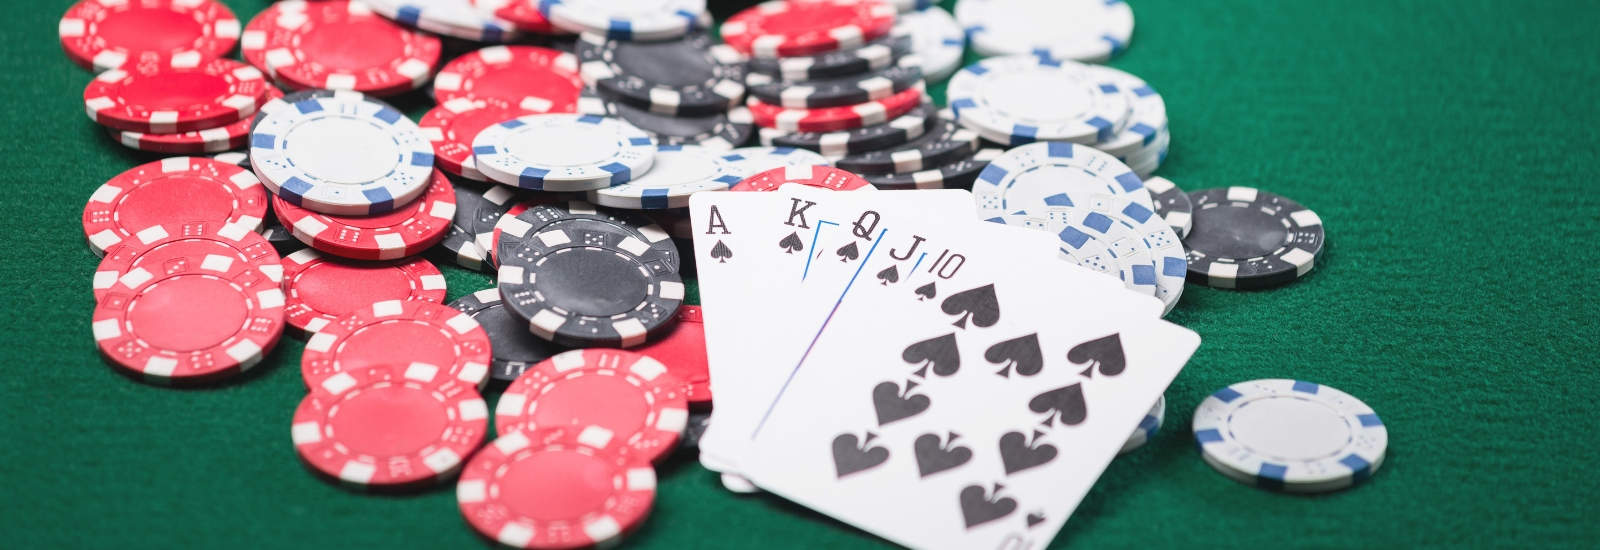 Discover excellent real money casino games with our guide